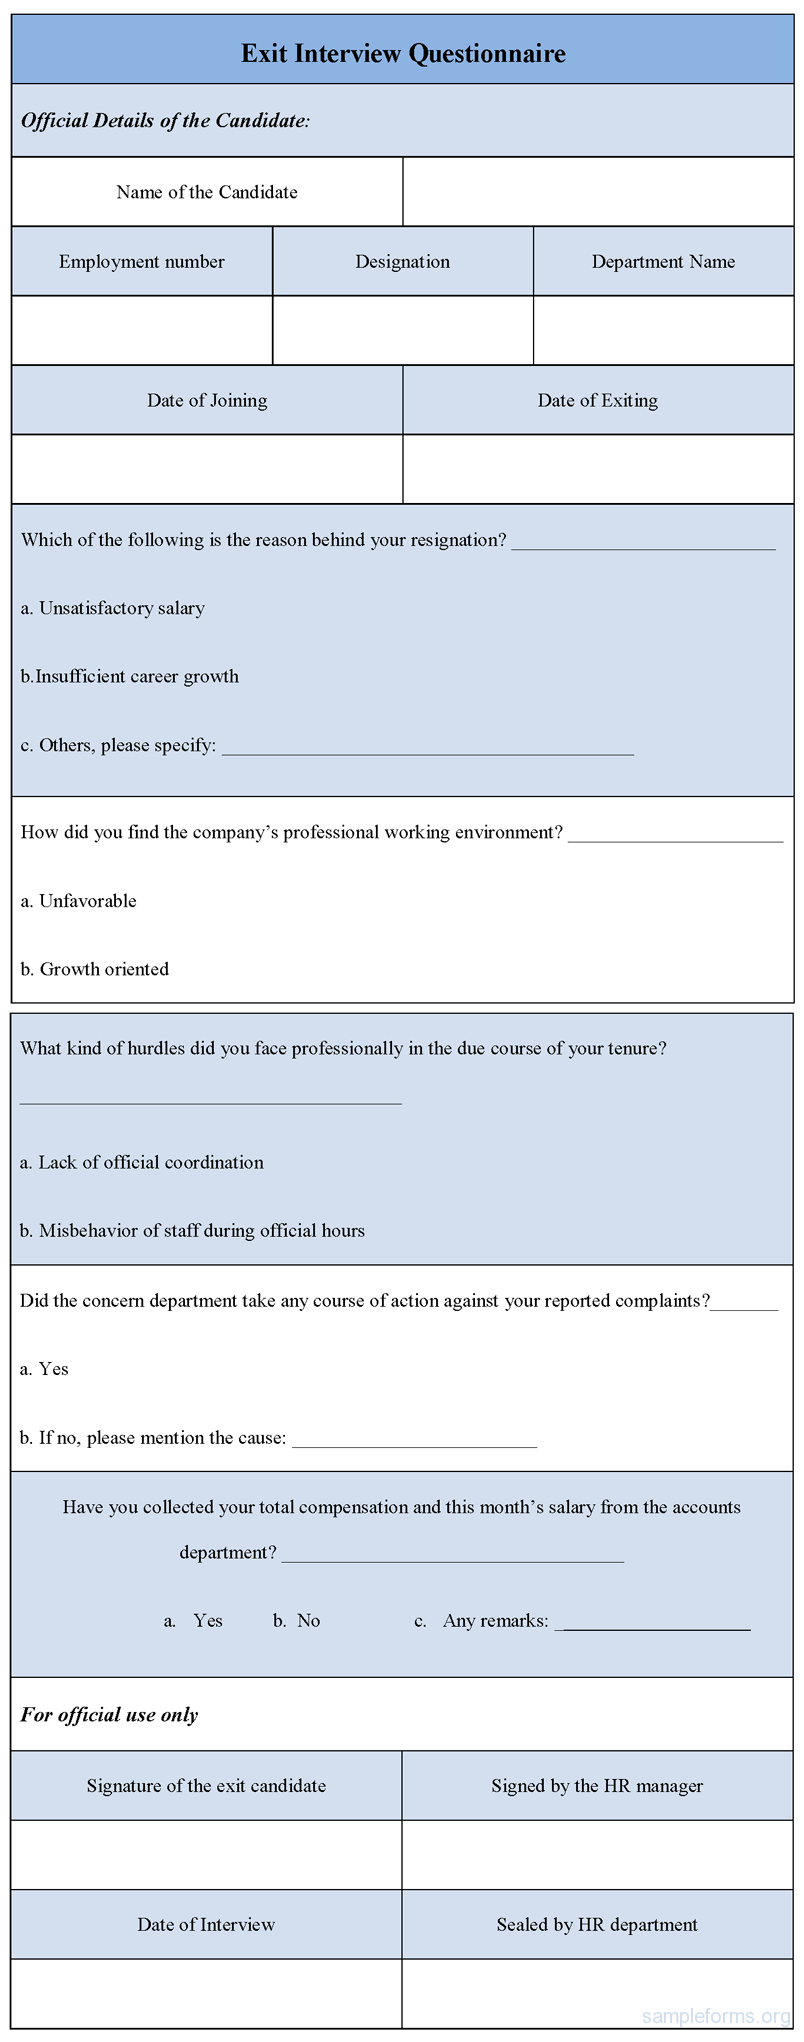 Exit Interview Questionnaire Form  Forms